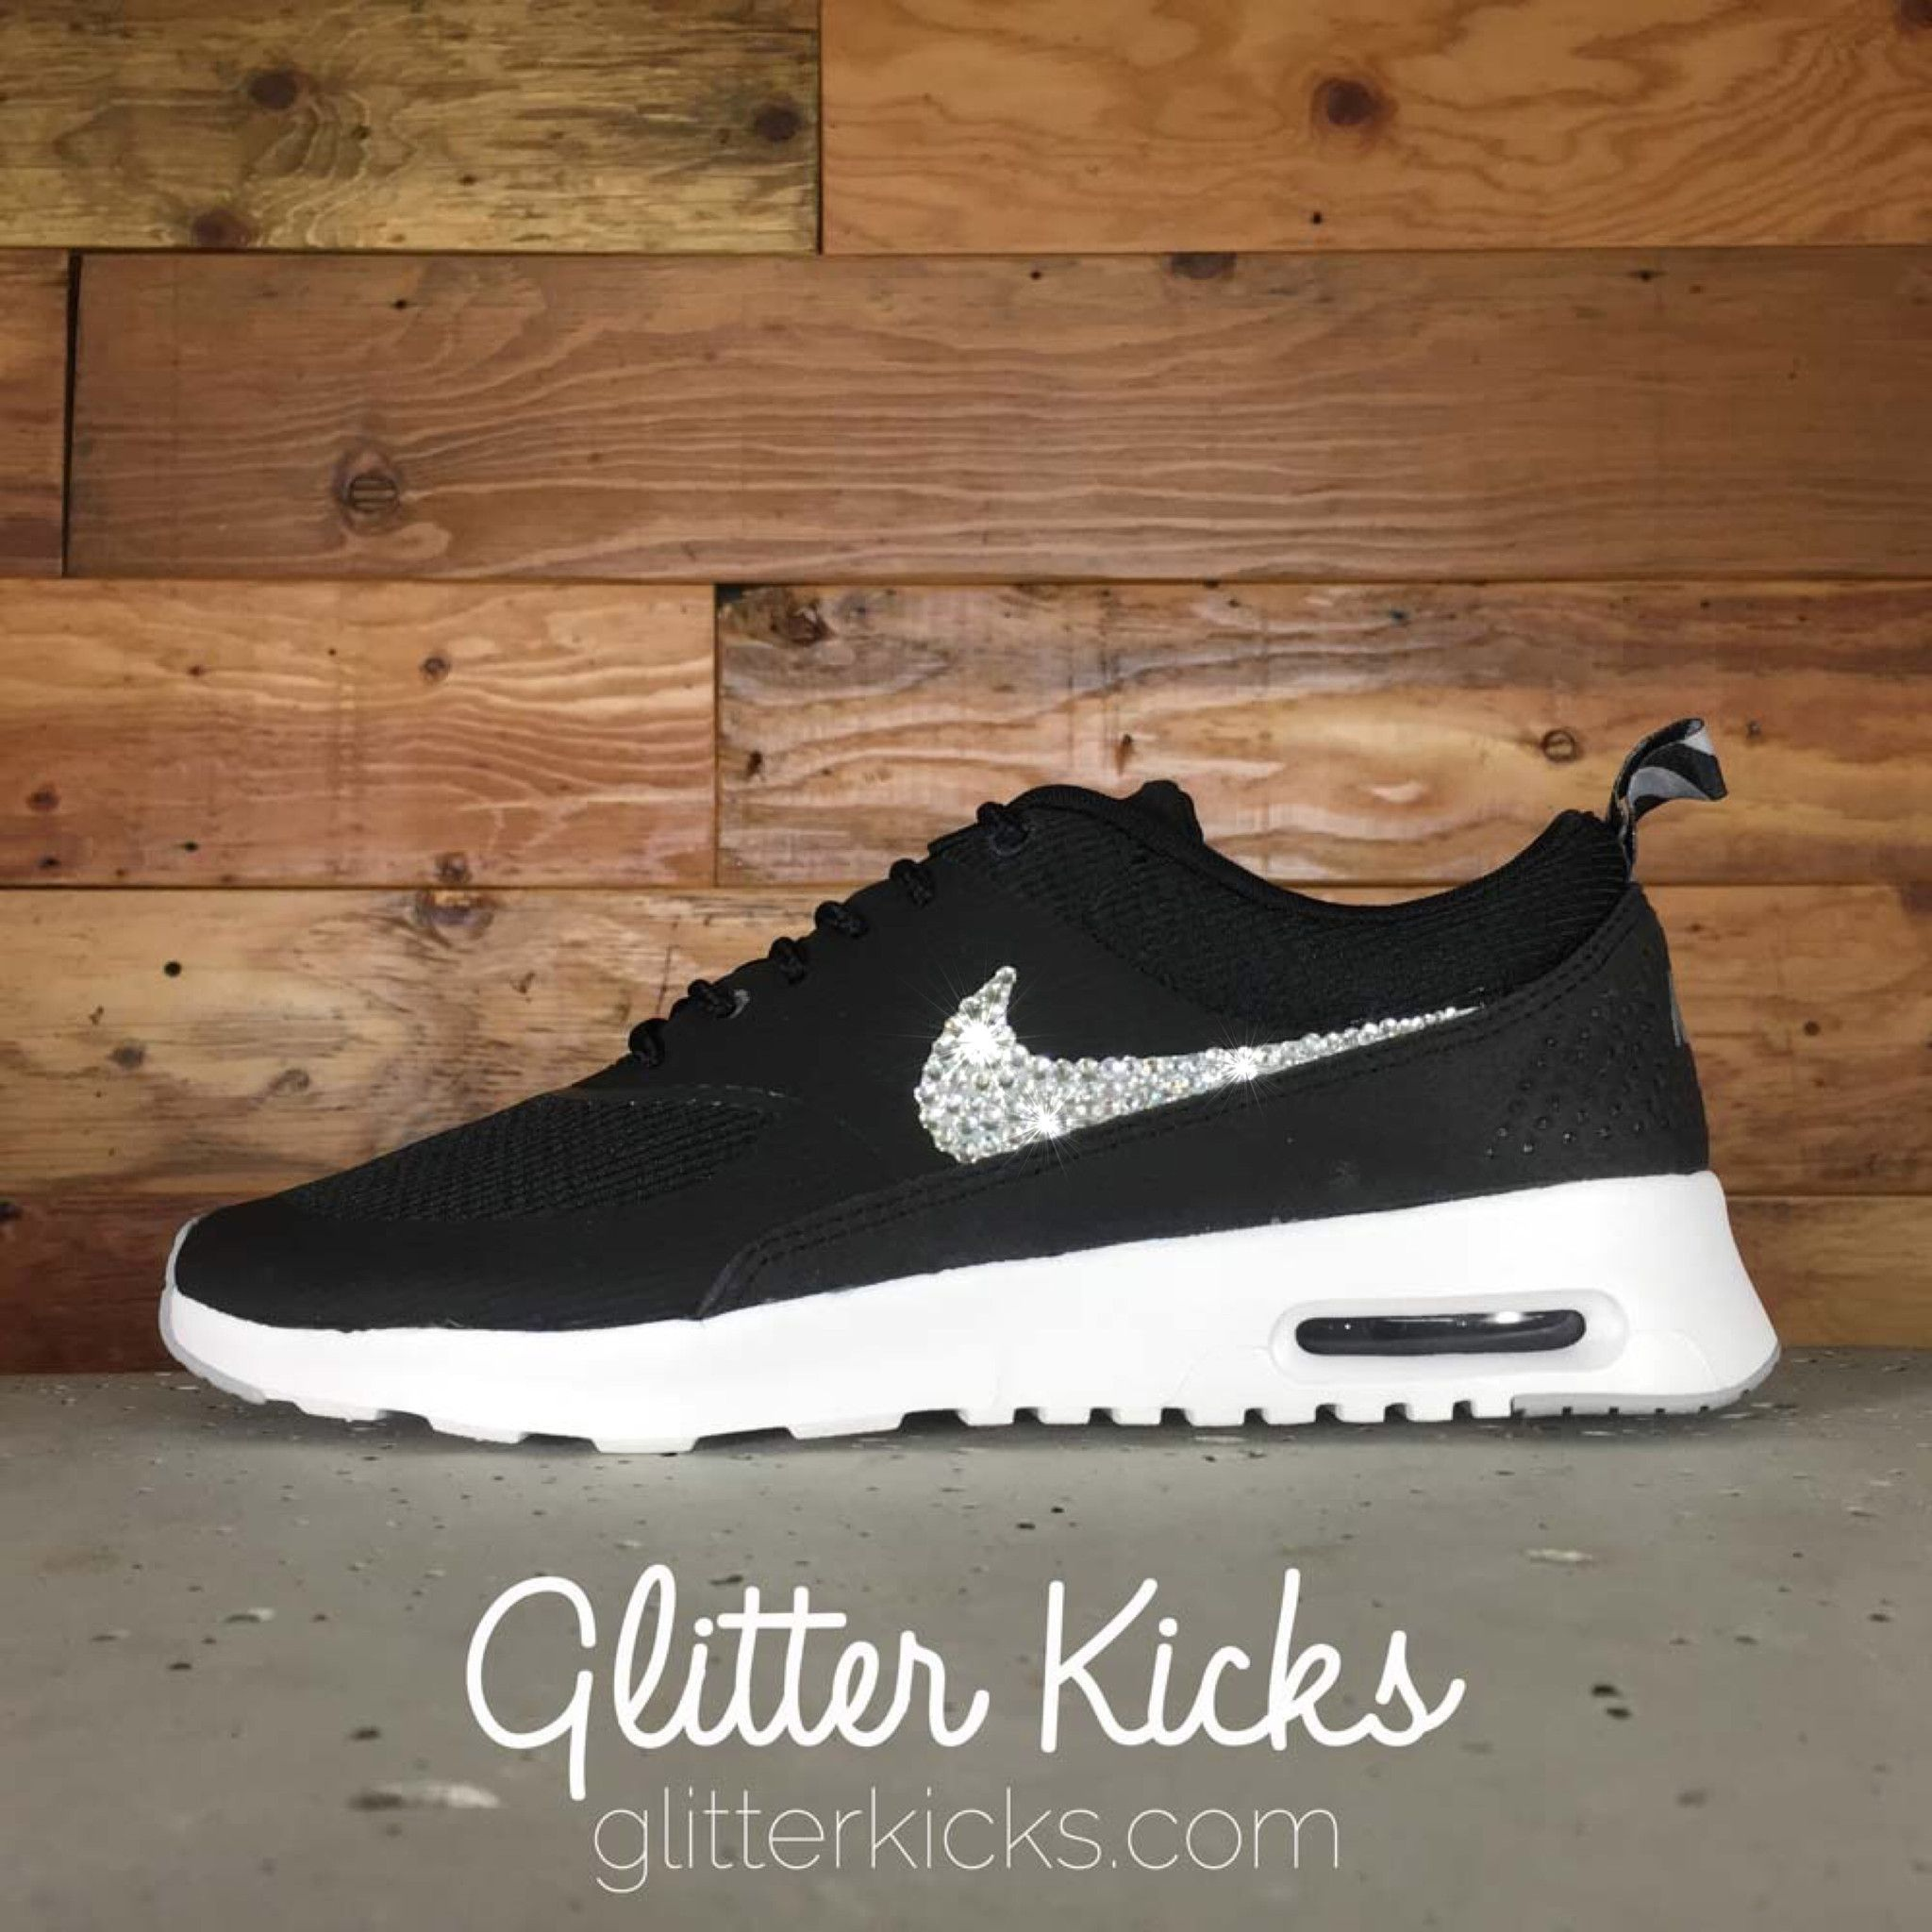 Nike Air Max Thea with Swarovski Crystals by Glitter Kicks! I will have  these at Christmas!! Excited! 0ab61afd7c